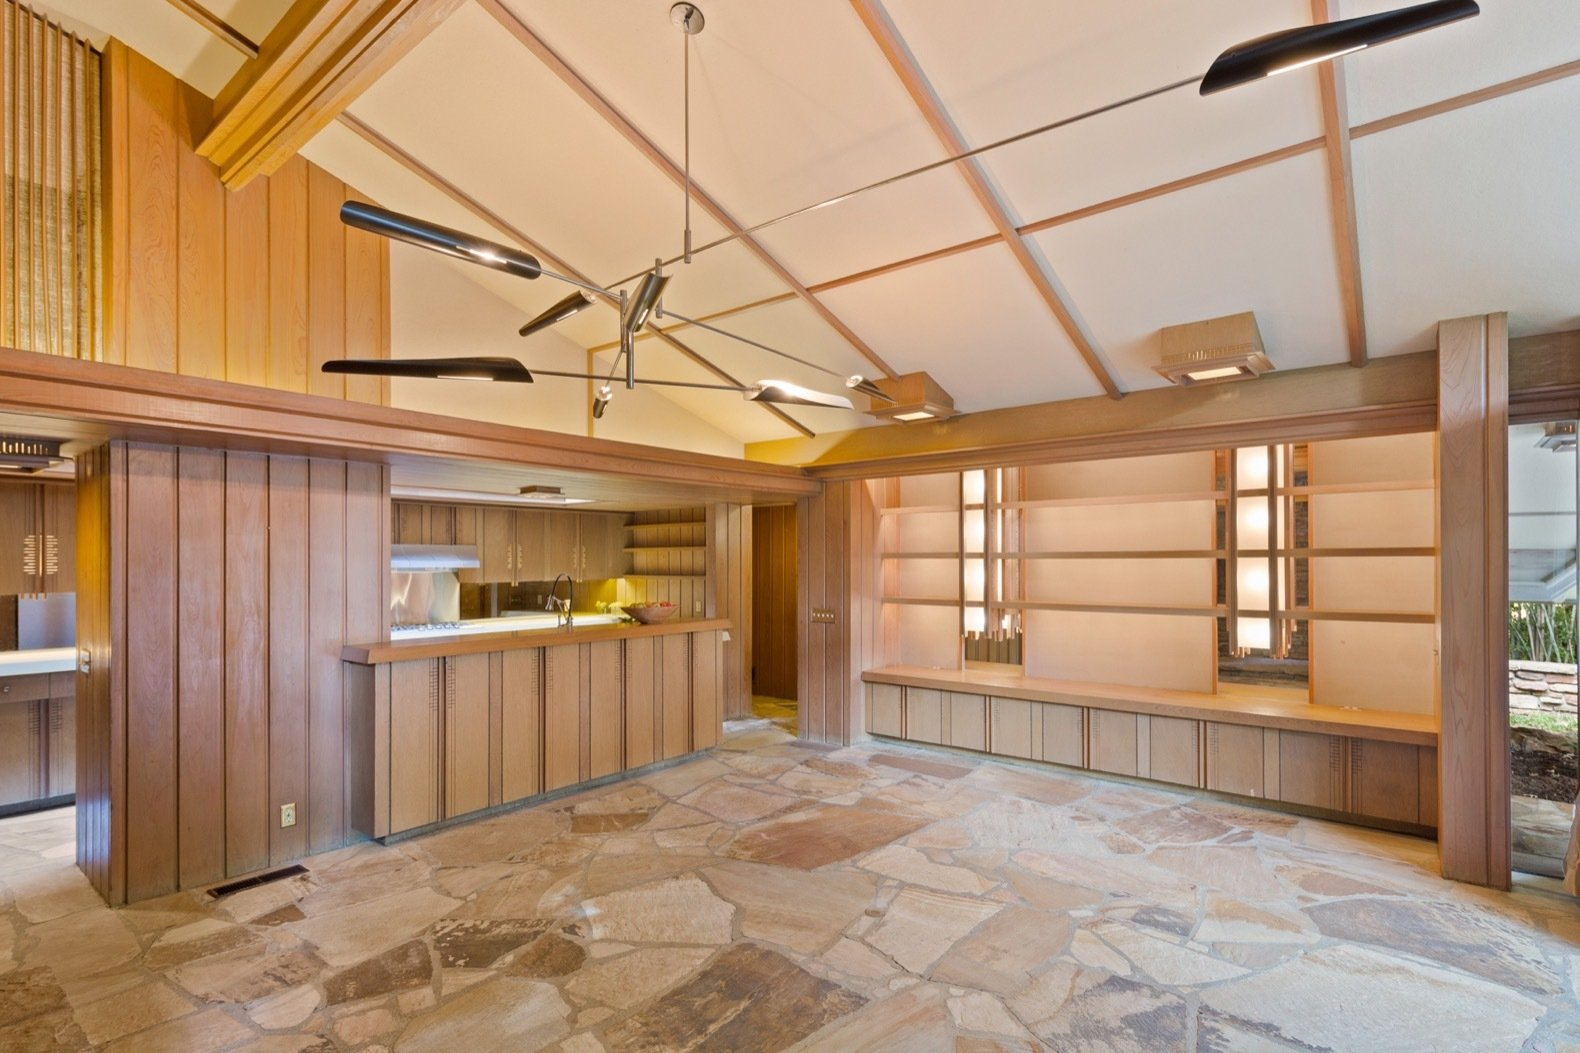 Dining, Accent, Storage, Bar, Shelves, Bench, Pendant, and Ceiling There are over 300 custom-made cabinet doors in the home, as well as custom light fixtures.    Best Dining Ceiling Shelves Photos from A Midcentury Masterpiece by E. Fay Jones Hits the Market at $1.8M